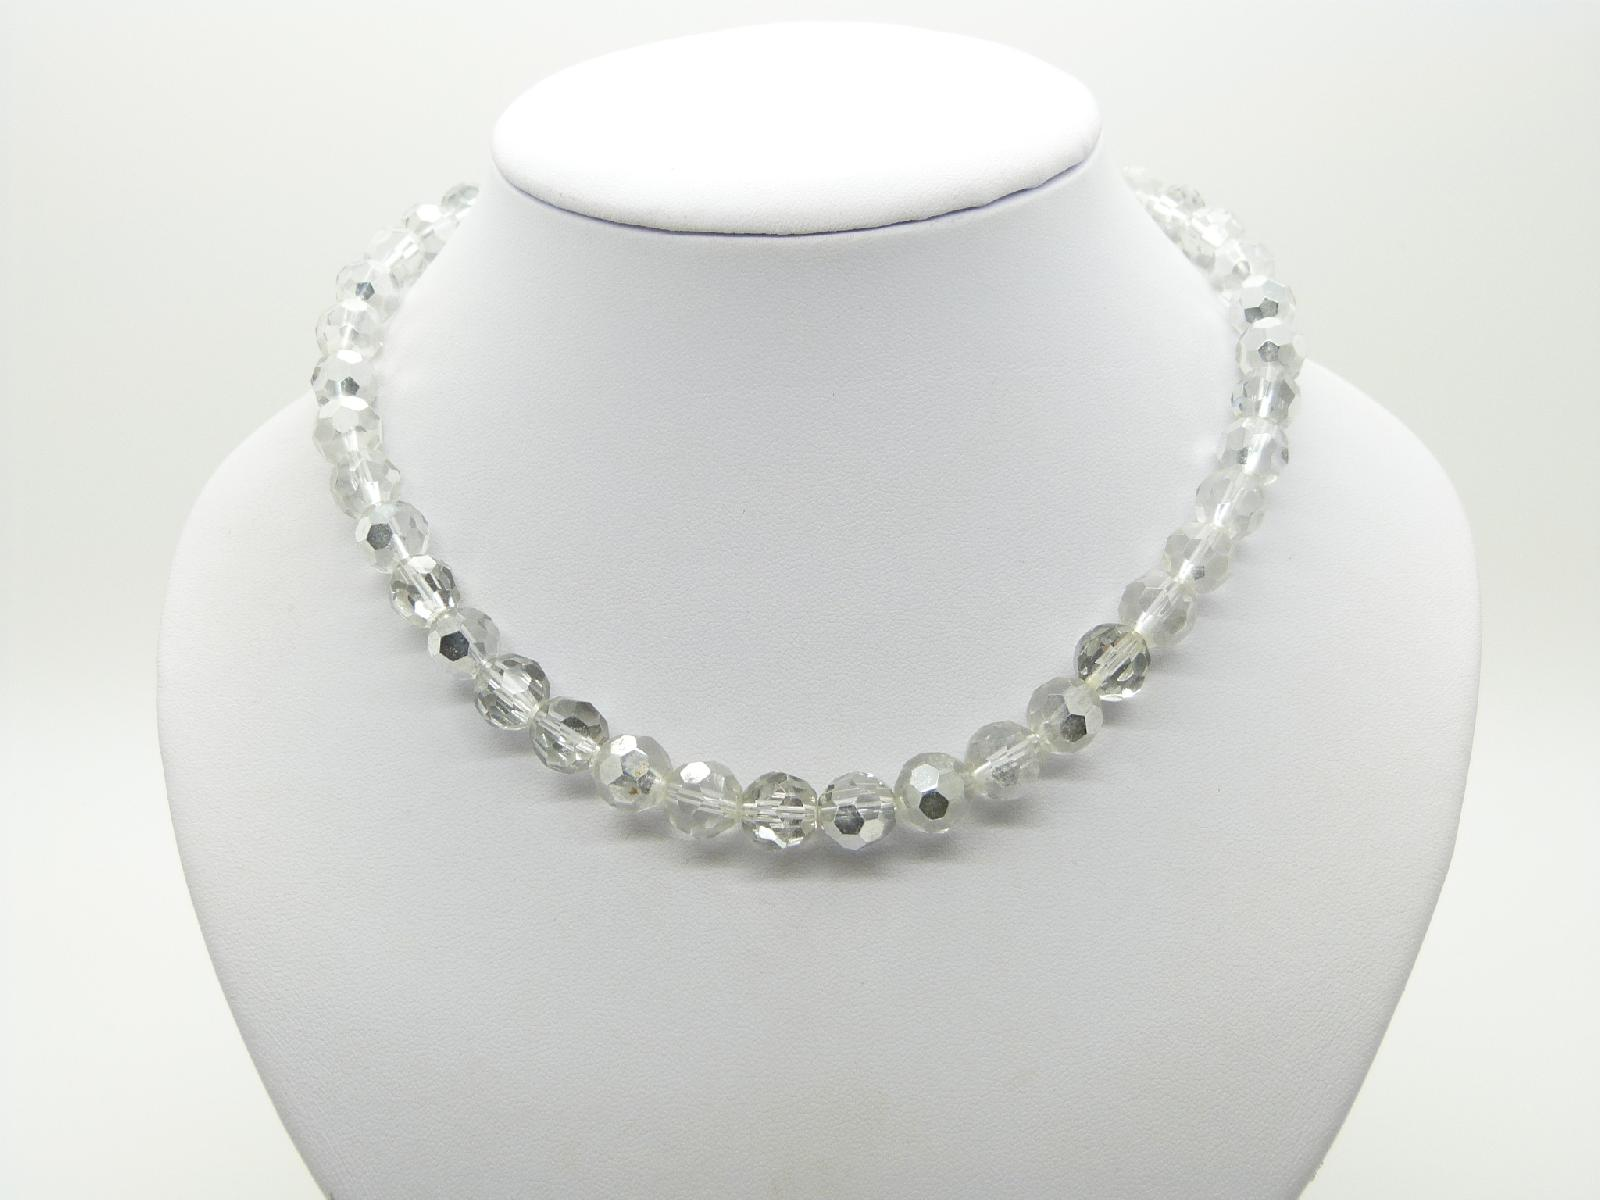 Vintage 50s STYLE Two Tone Crystal and Silver Glass Bead Necklace 44cms